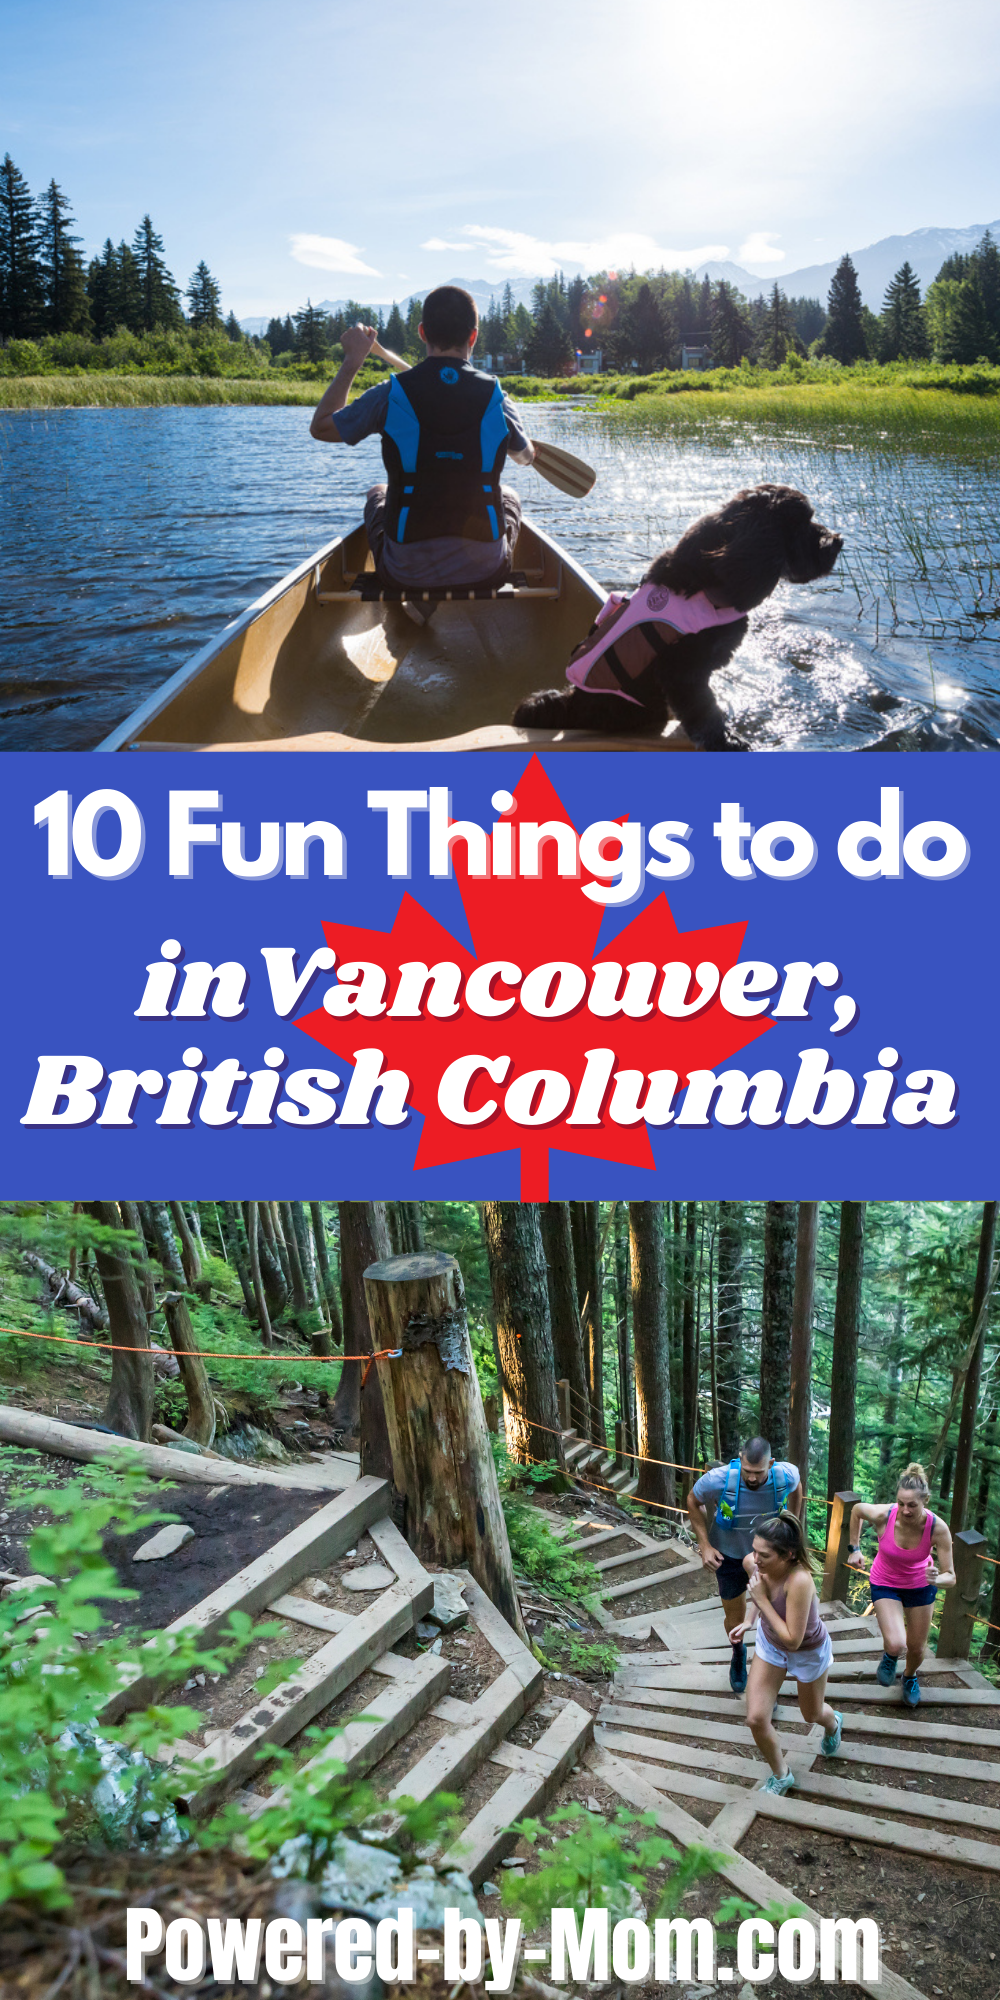 If you are planning a vacation to British Columbia, check out these 10 amazing things to do in Metro Vancouver. This vibrant city is full of fun things!